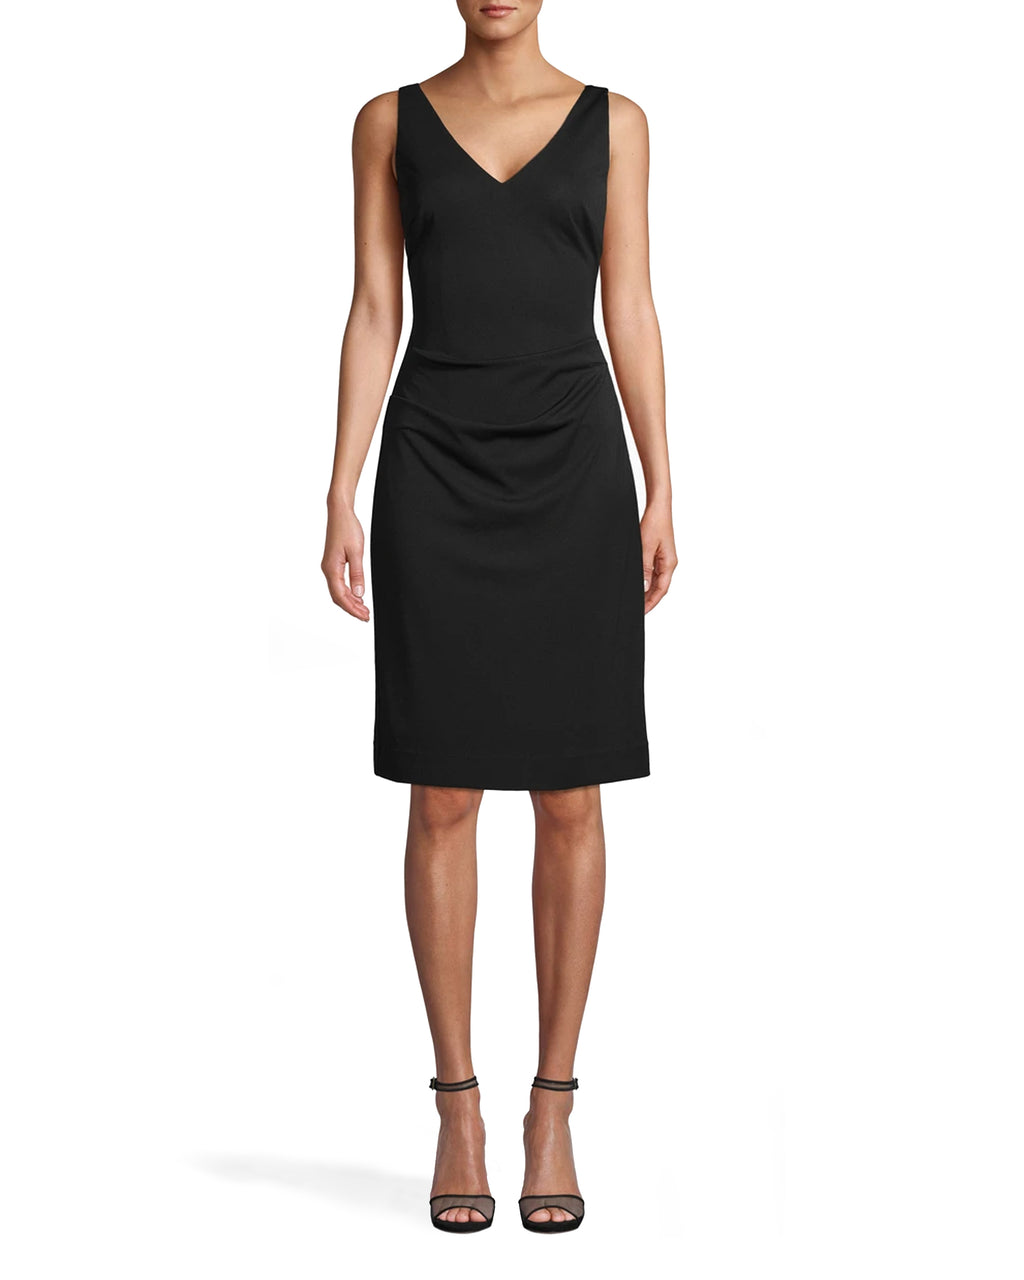 CE18027 - STRETCHY MATTE JERSEY DRESS - dresses - short - EVERY CLOSET NEEDS A LBD. THIS CLASSIC STYLE CAN BE WORN EVERYWHERE FROM A WEDDING TO THE OFFICE. FEATURES BRA FRIENDLY STRAPS, A FLATTERING SIDE TUCK, AND KNEE LENGTH HEMLINE. BACK ZIPPER FOR CLOSURE. Add 1 line break STYLIST TIP: DRESS IT UP WITH STATEMENT SHOES OR JEWELRY.